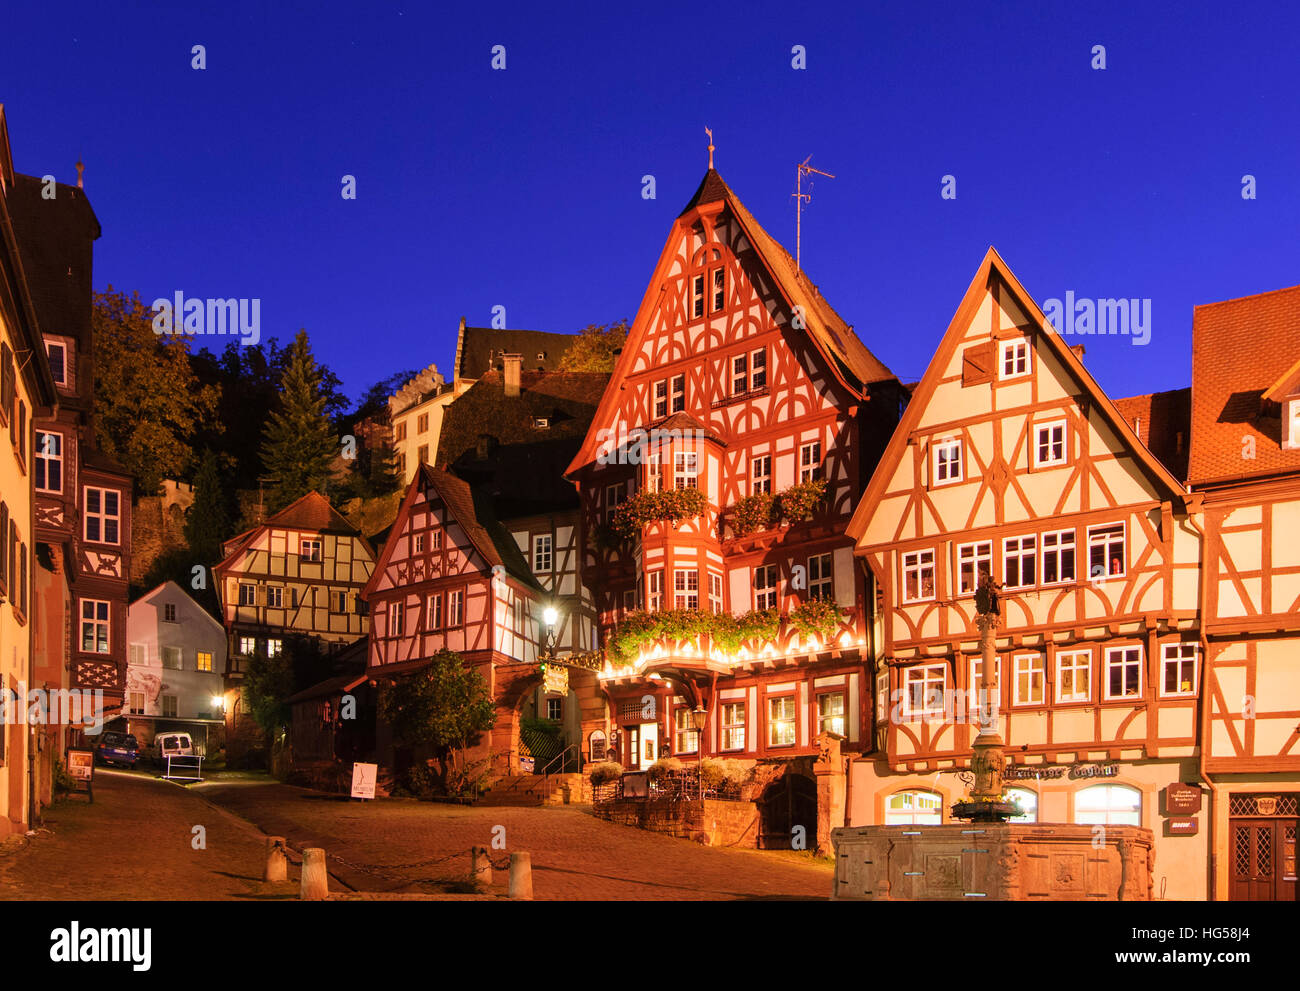 miltenberg schnatterloch marktplatz mit brunnen unterfranken unterfranken bayern bayern. Black Bedroom Furniture Sets. Home Design Ideas